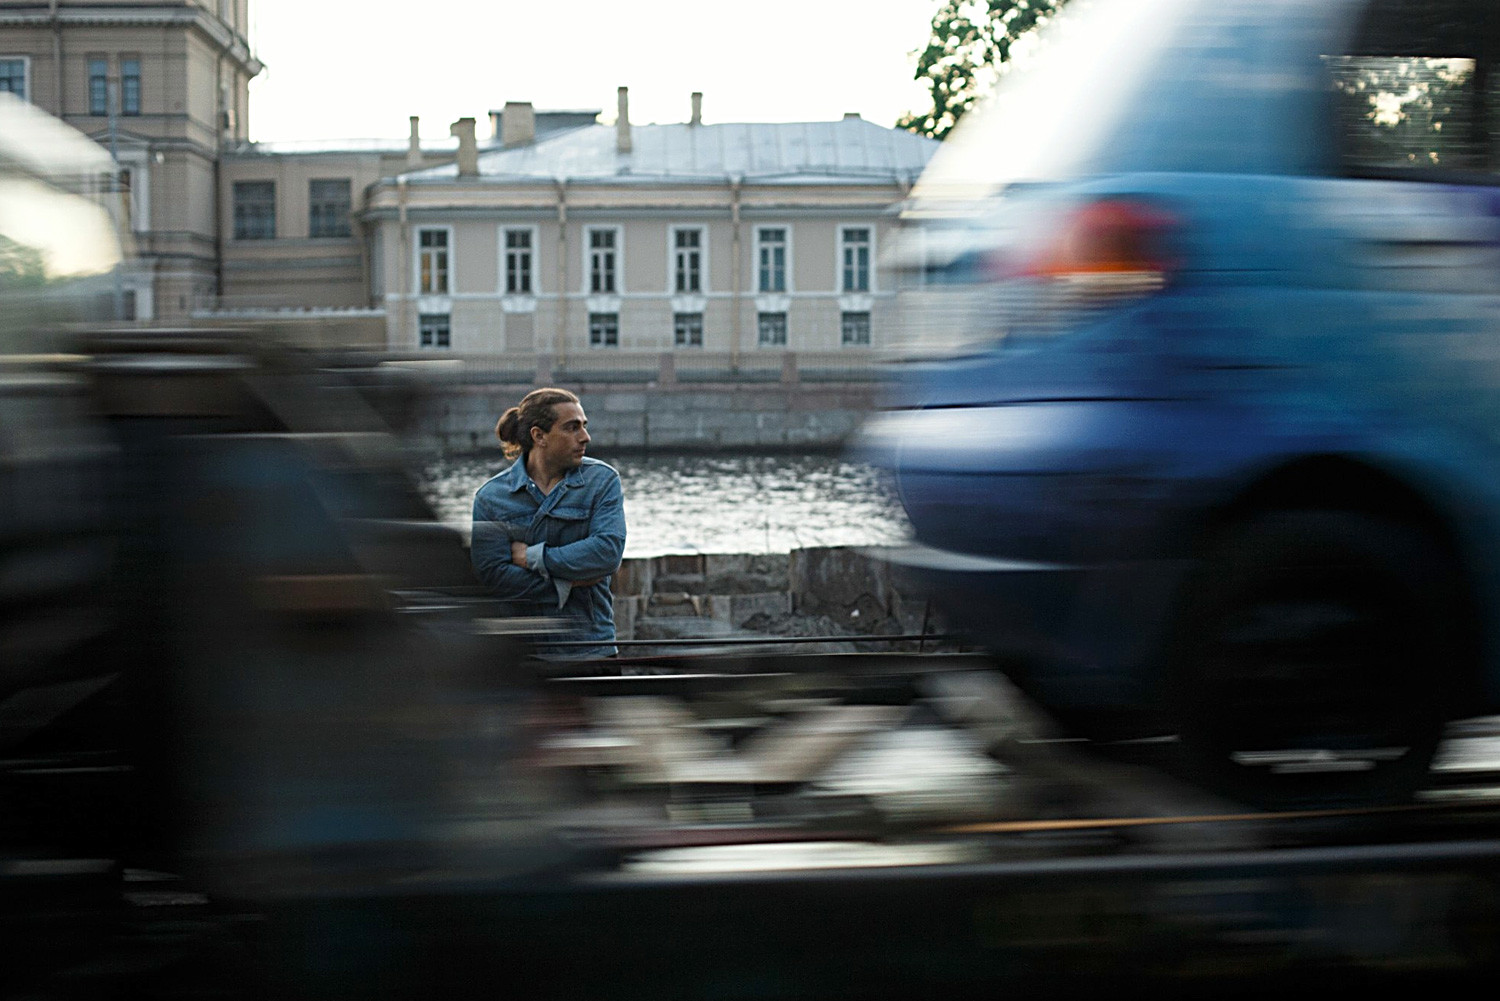 Blurred Motion Of Vehicles Against Man Standing By River Photo Taken In Saint Petersburg, Russia